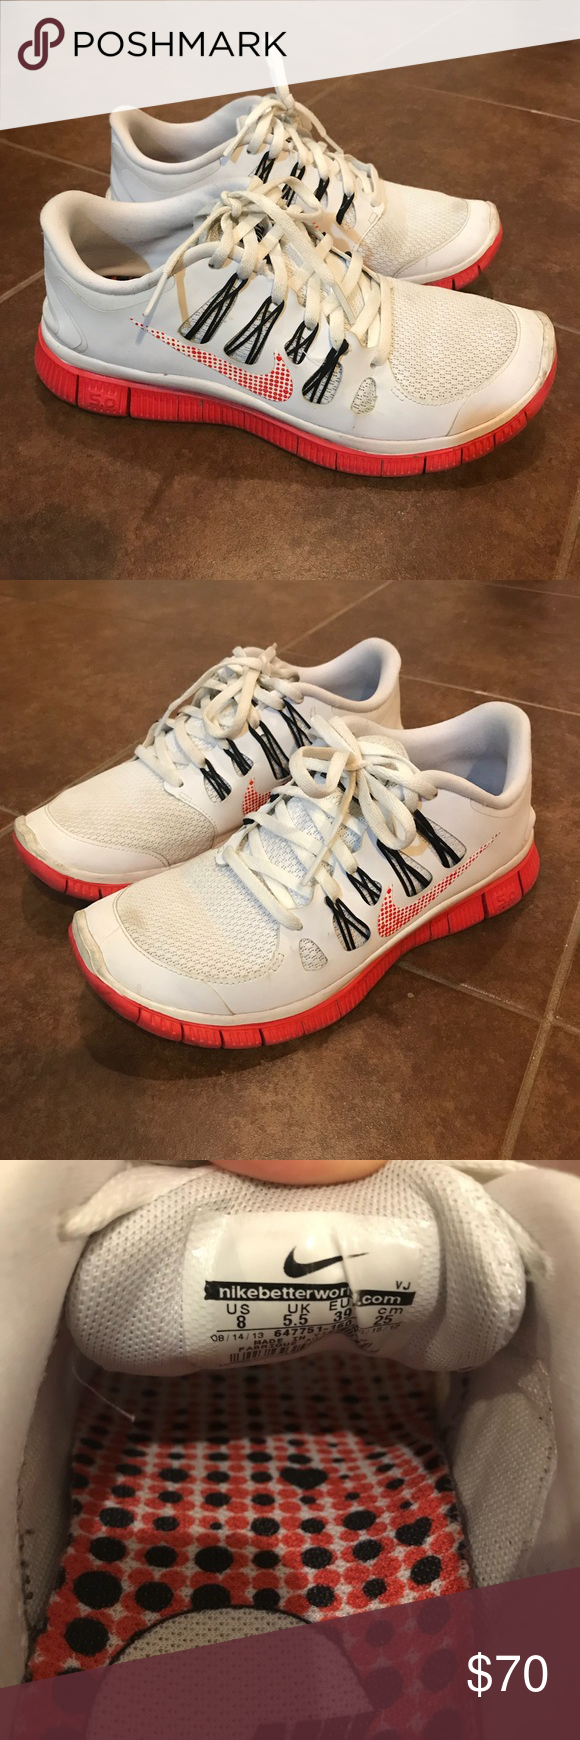 Nike Free 5.0+ Running Shoes Worn but in good condition